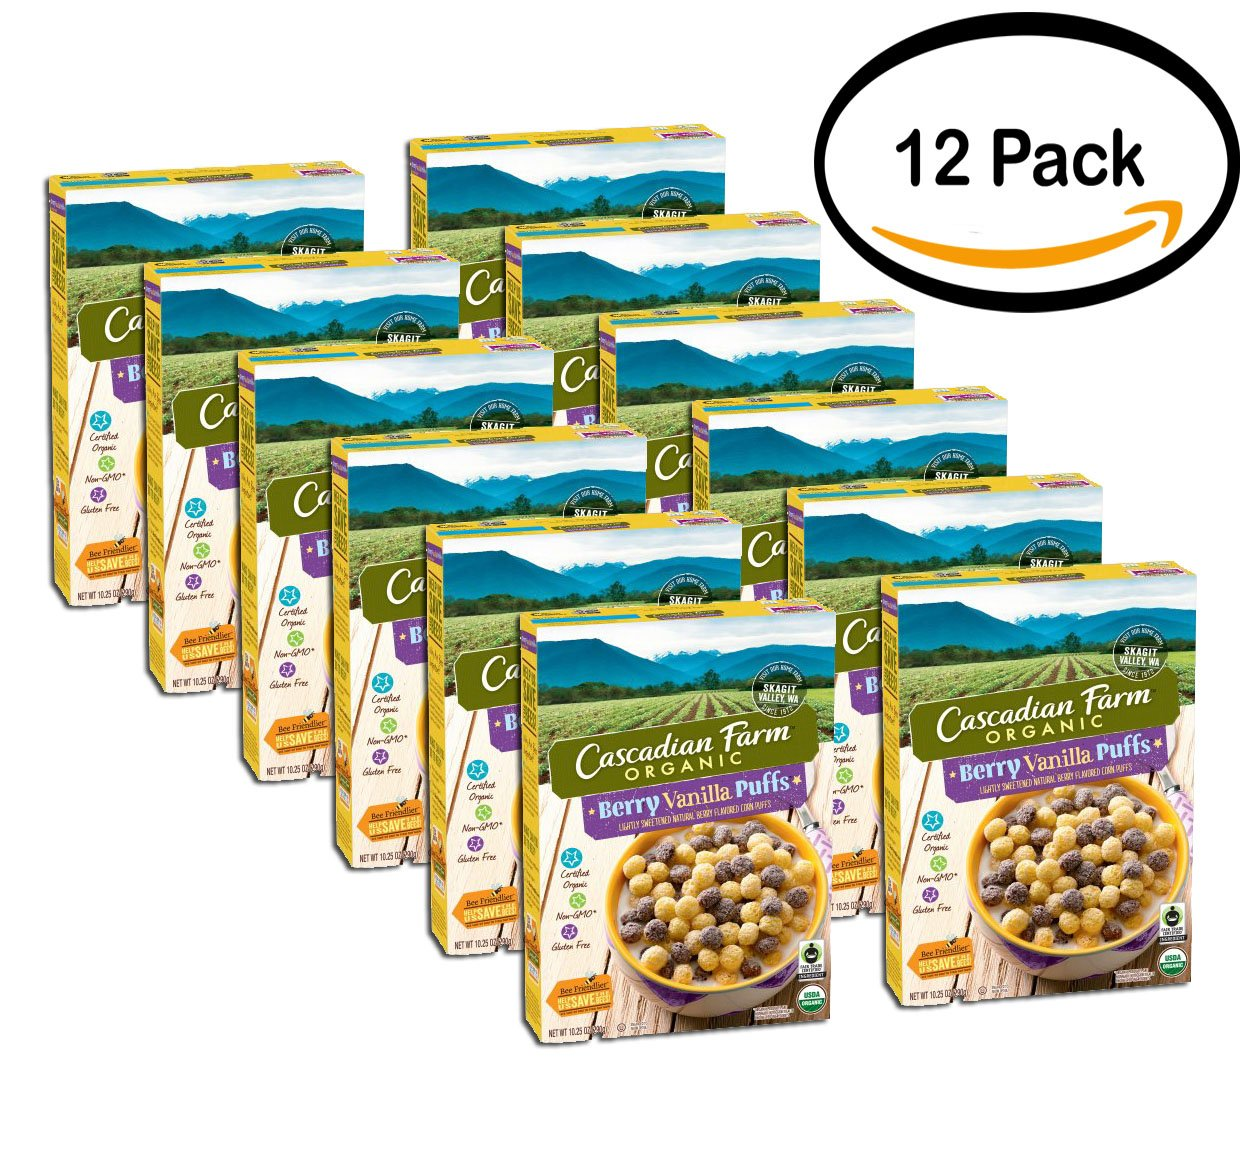 PACK OF 12 - Cascadian Farm Organic Berry Vanilla Puffs Gluten Free Cereal 10.25 oz. Box